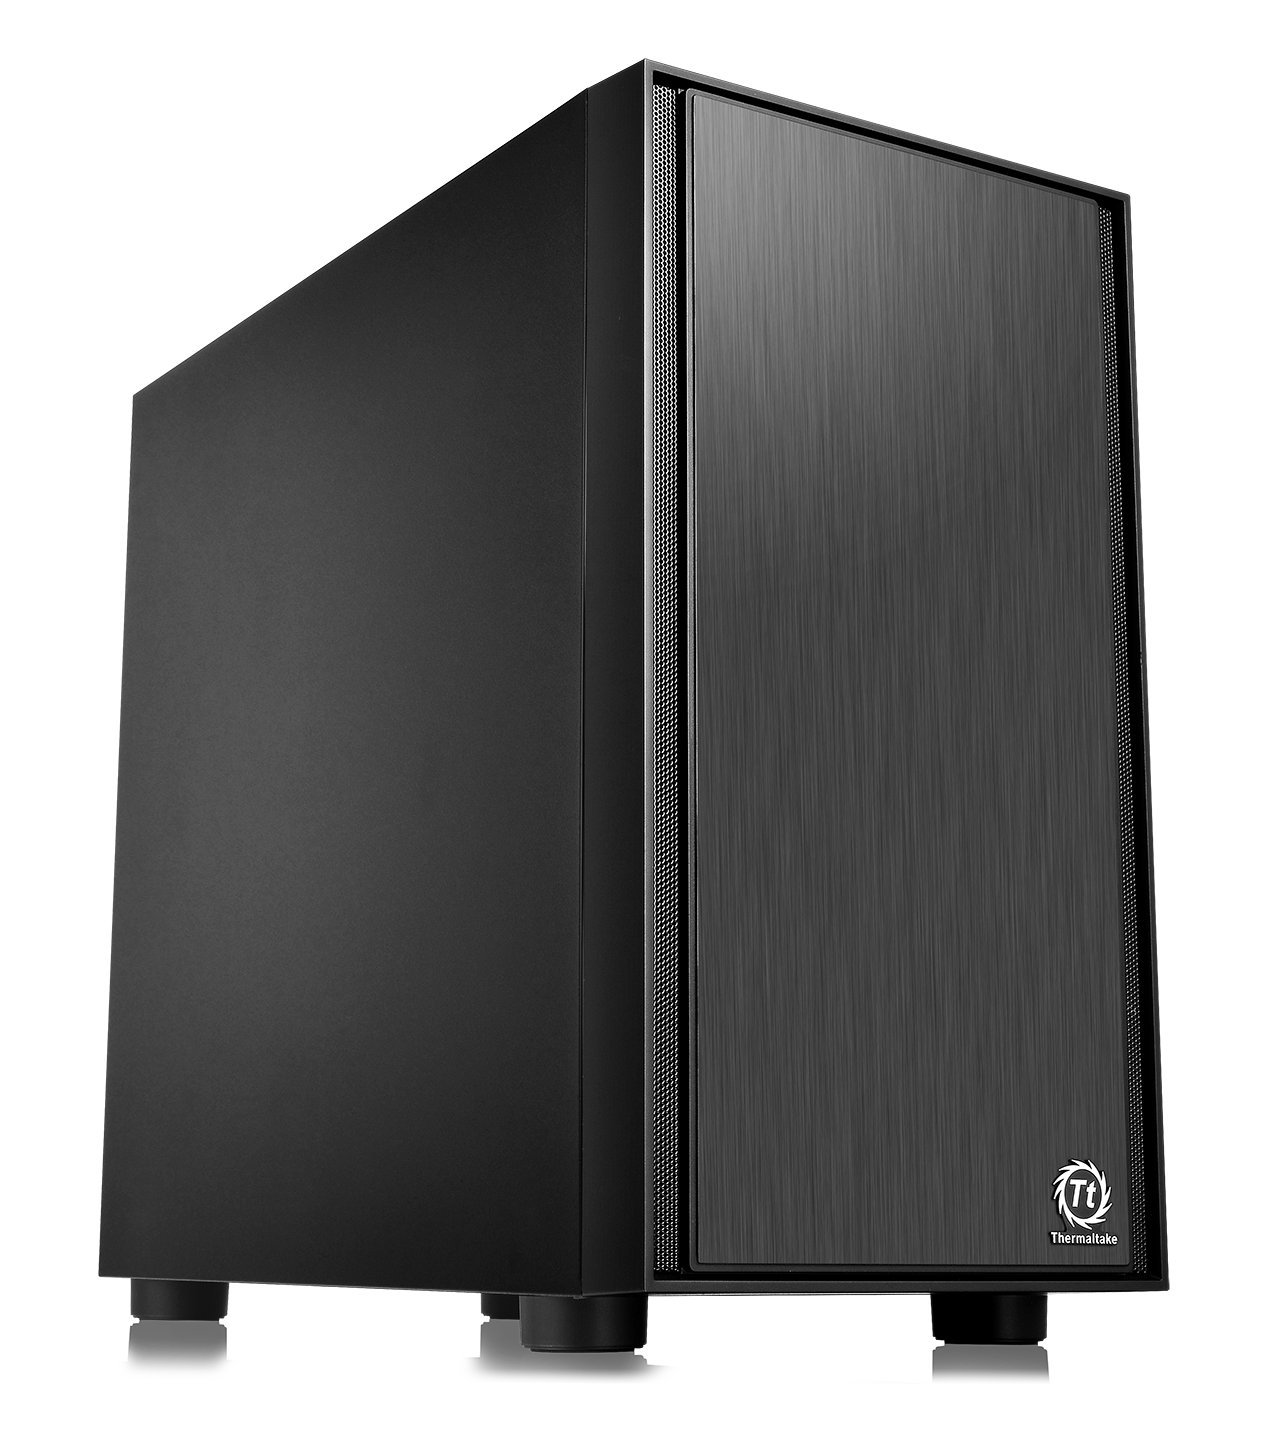 Thermaltake Versa H17 Black Micro ATX Mini Tower Gaming Computer Case 2.0 Edition with One 120mm Rear Fan Pre-Installed CA-1J1-00S1NN-A0 by Thermaltake